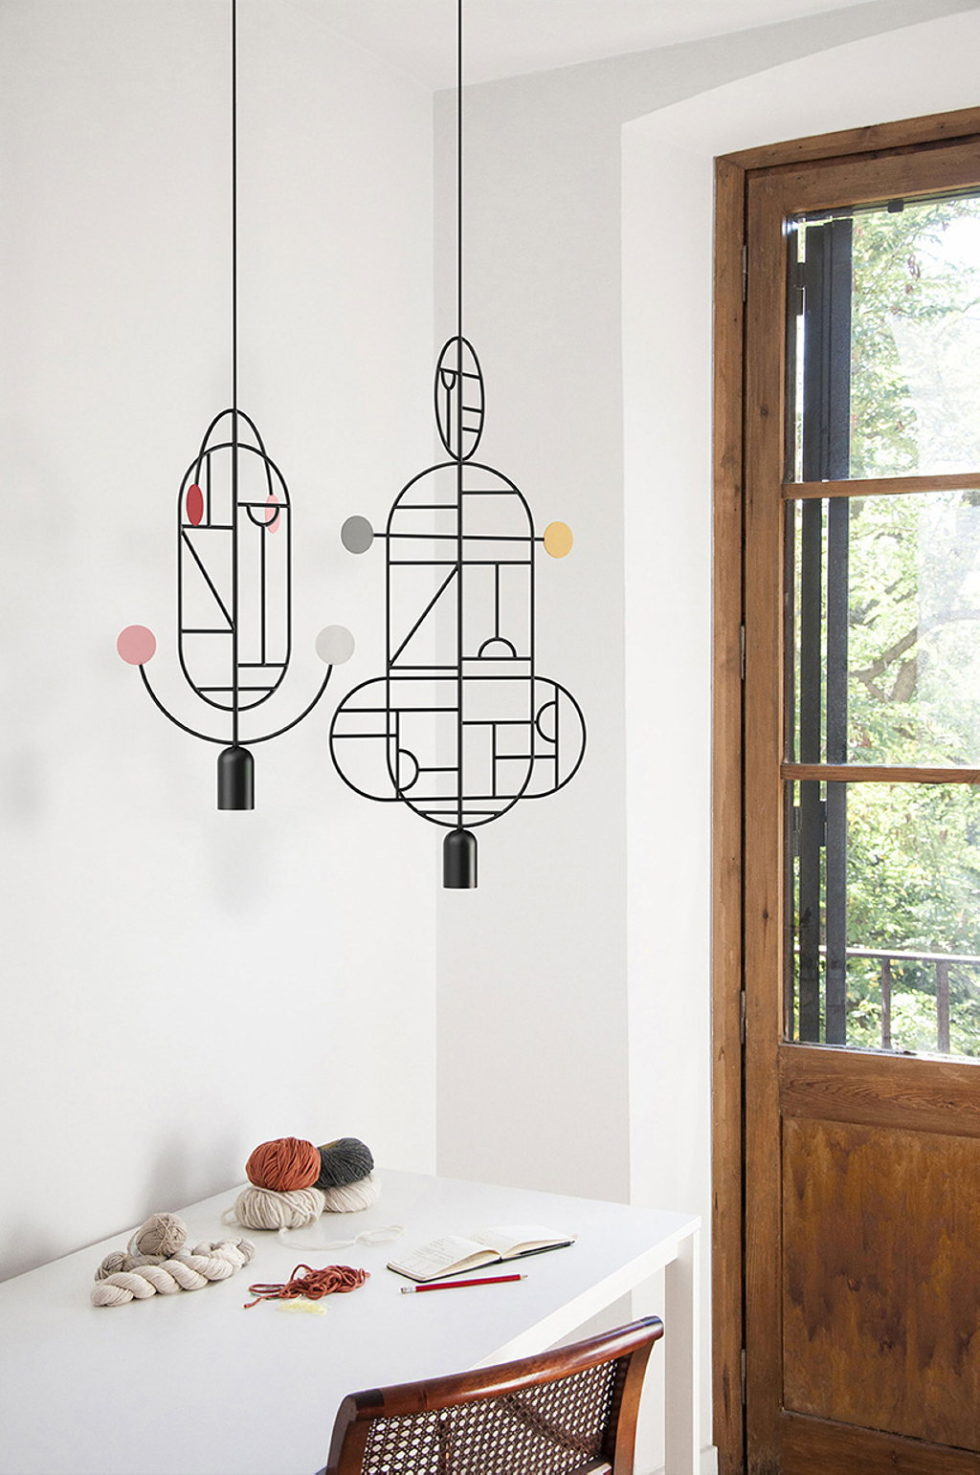 Minimalist pendant lamps Lines & Dots from Goula Figuera studio 5